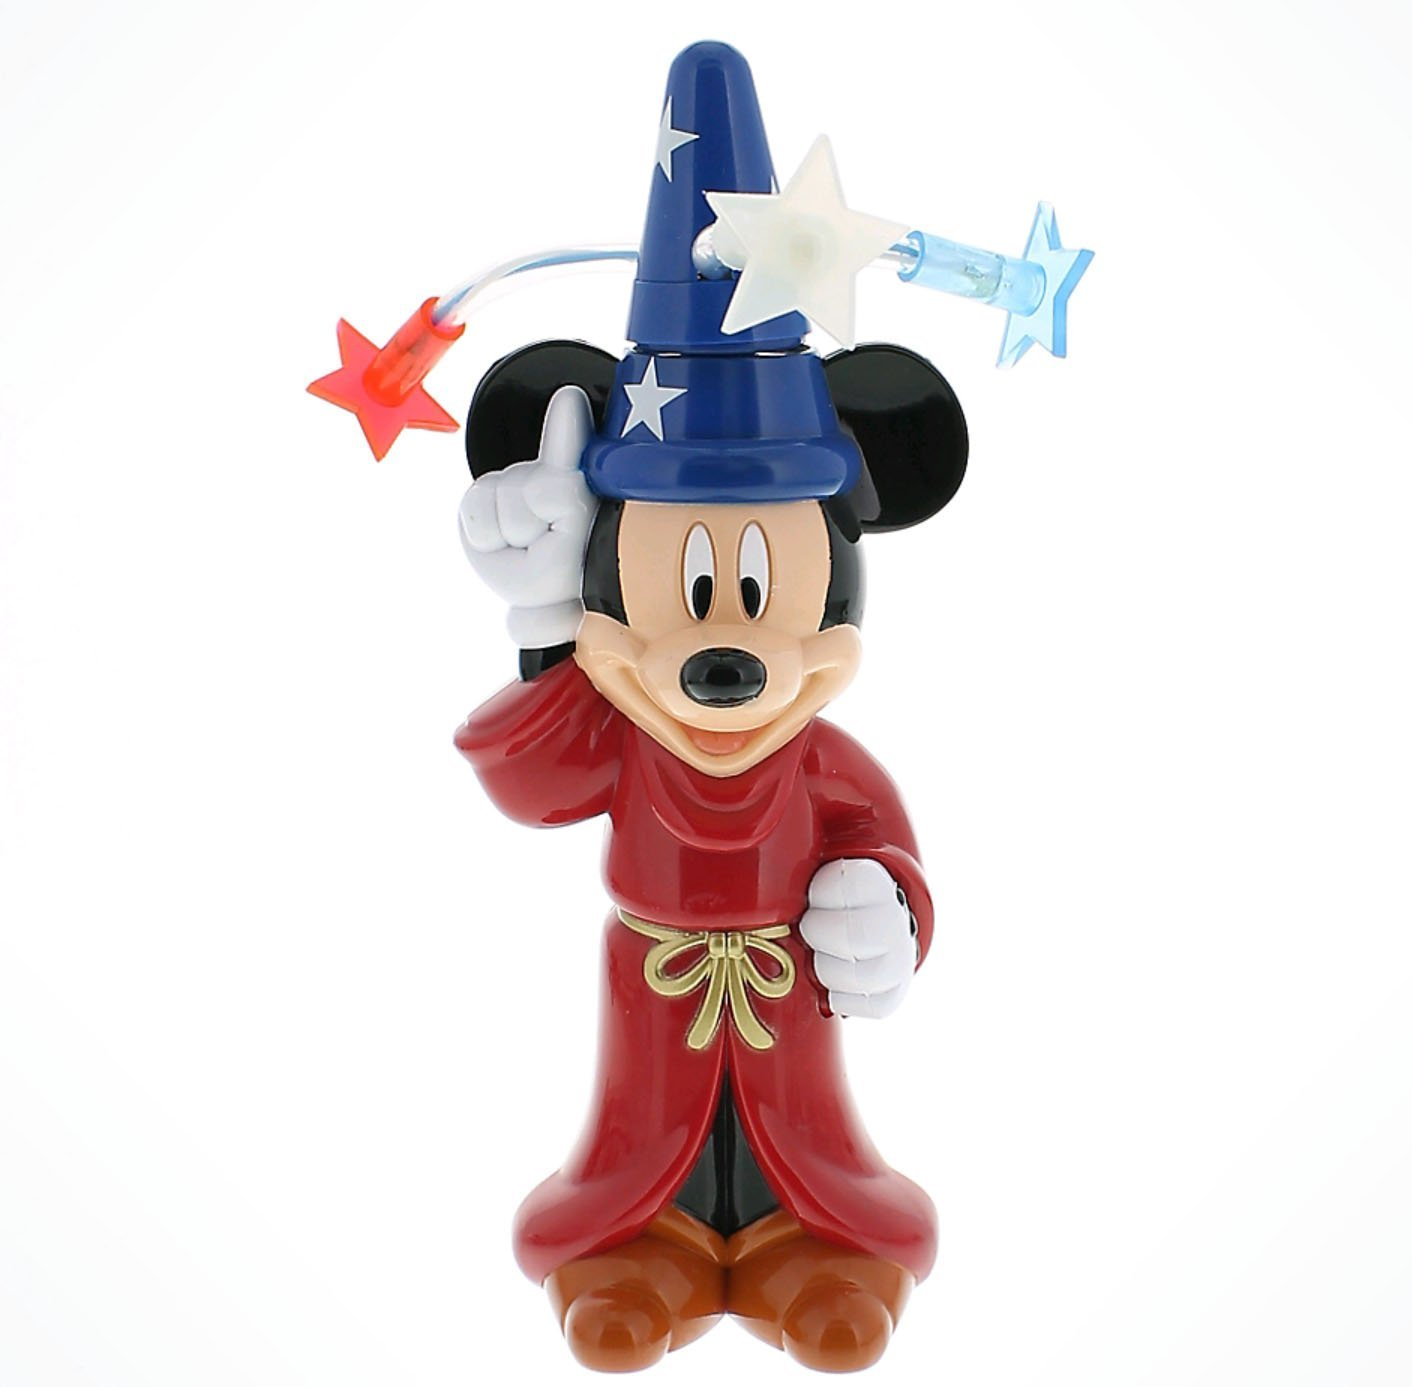 Disneyland Savings - Light Up Toys